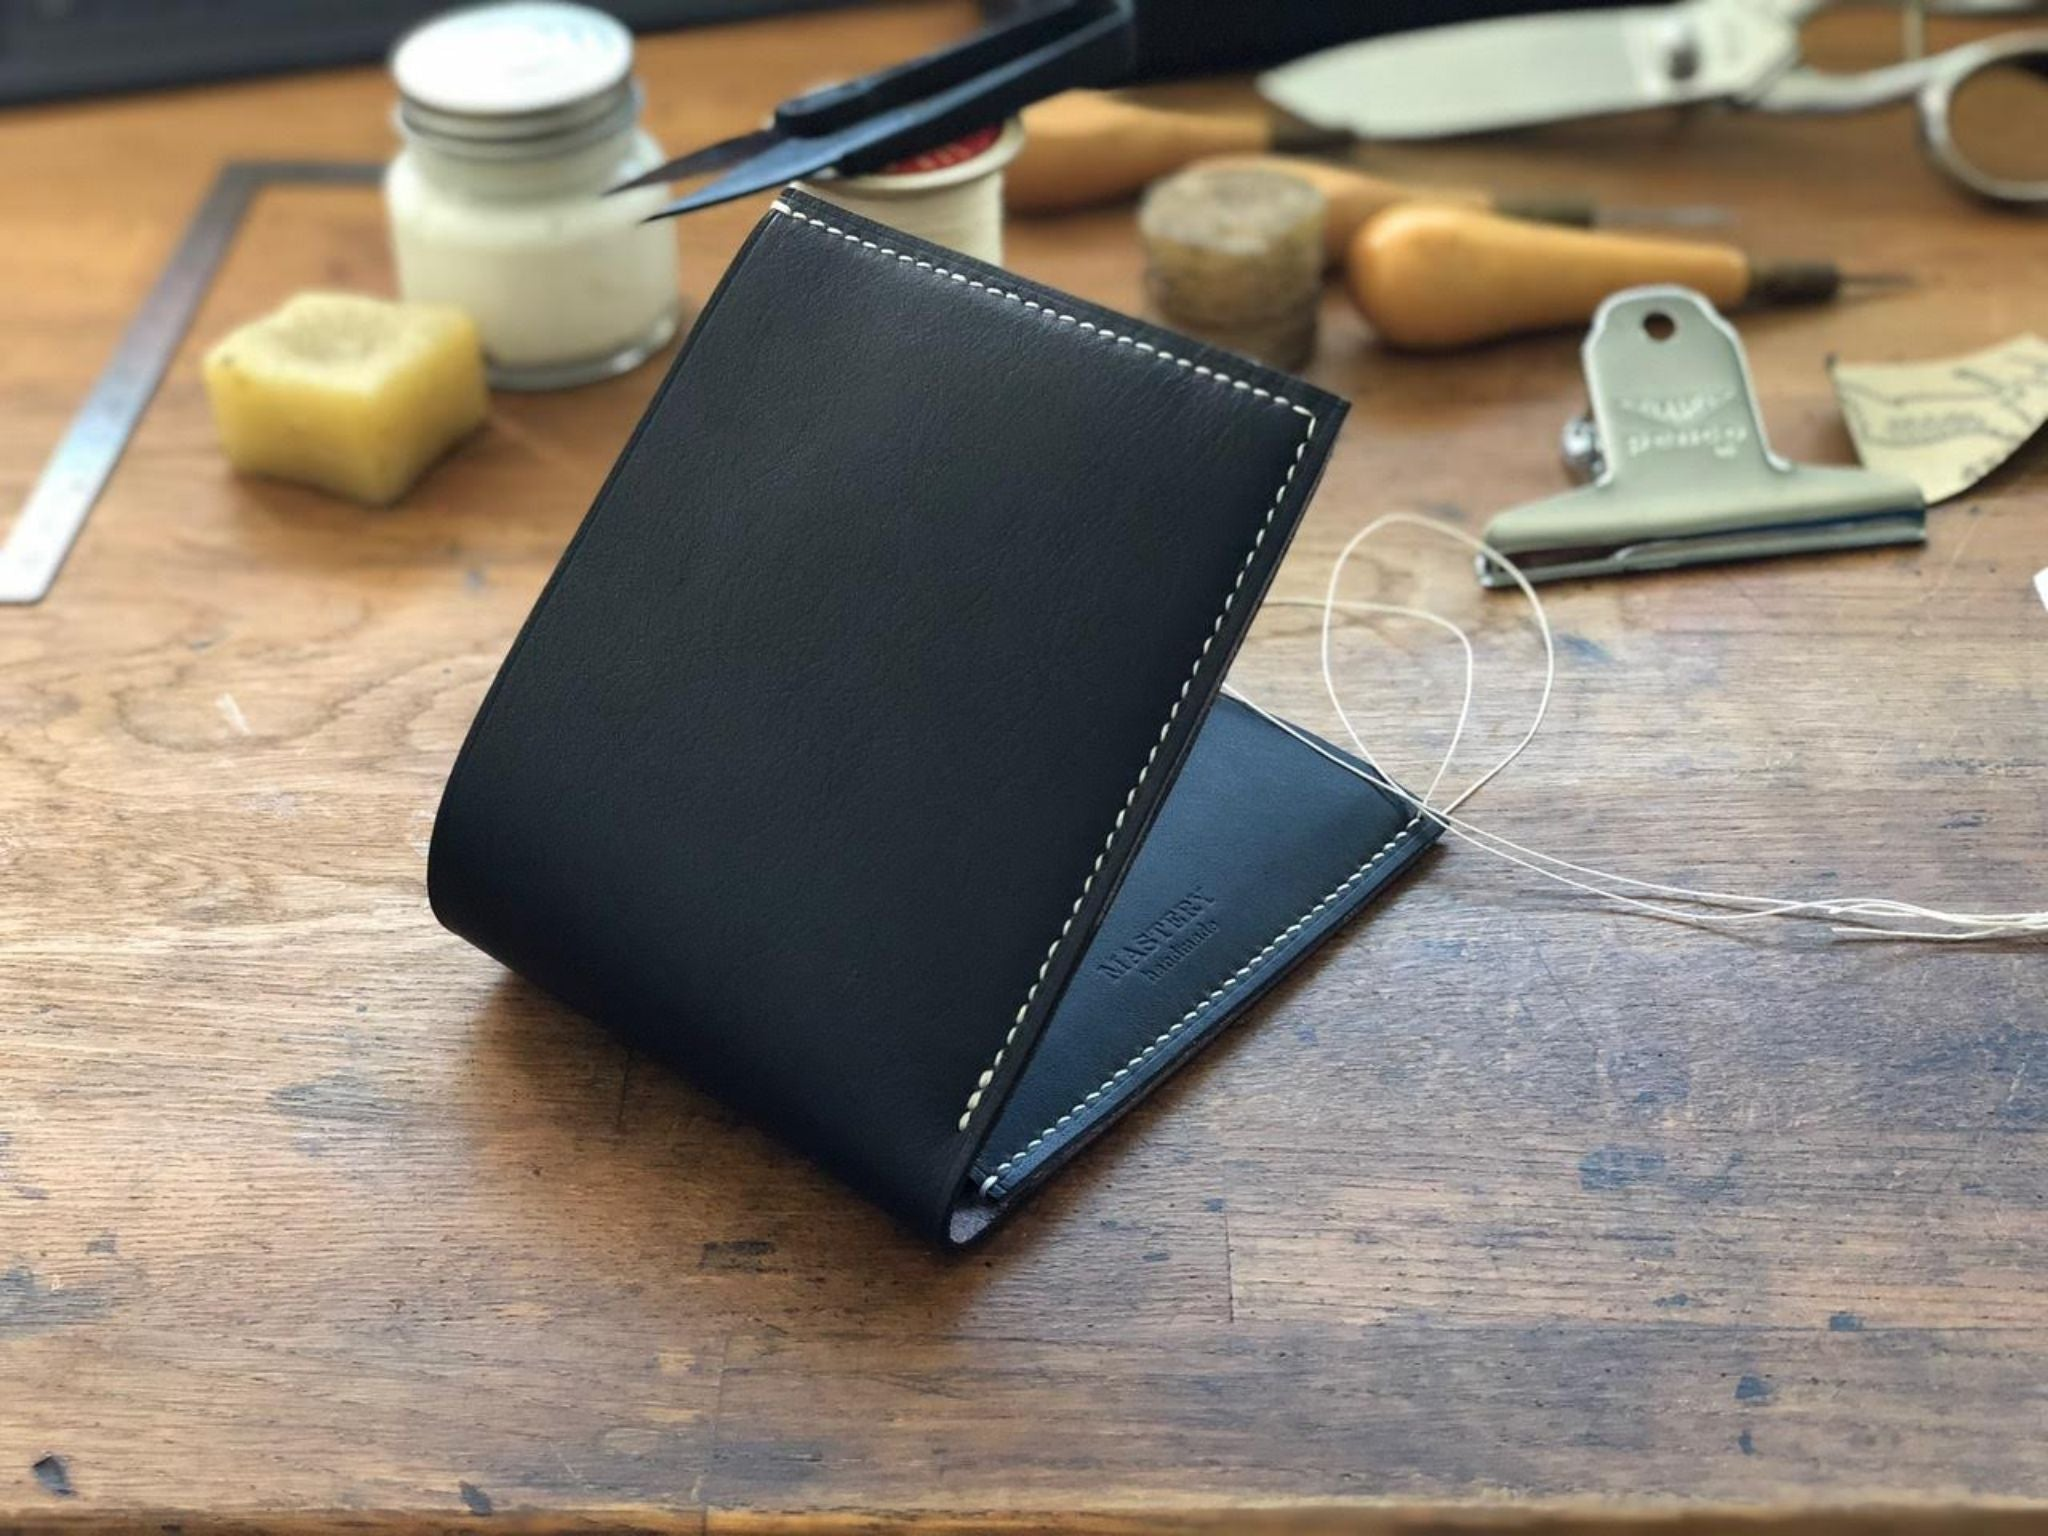 Hand-stitching the handmade wallet by Mastery co